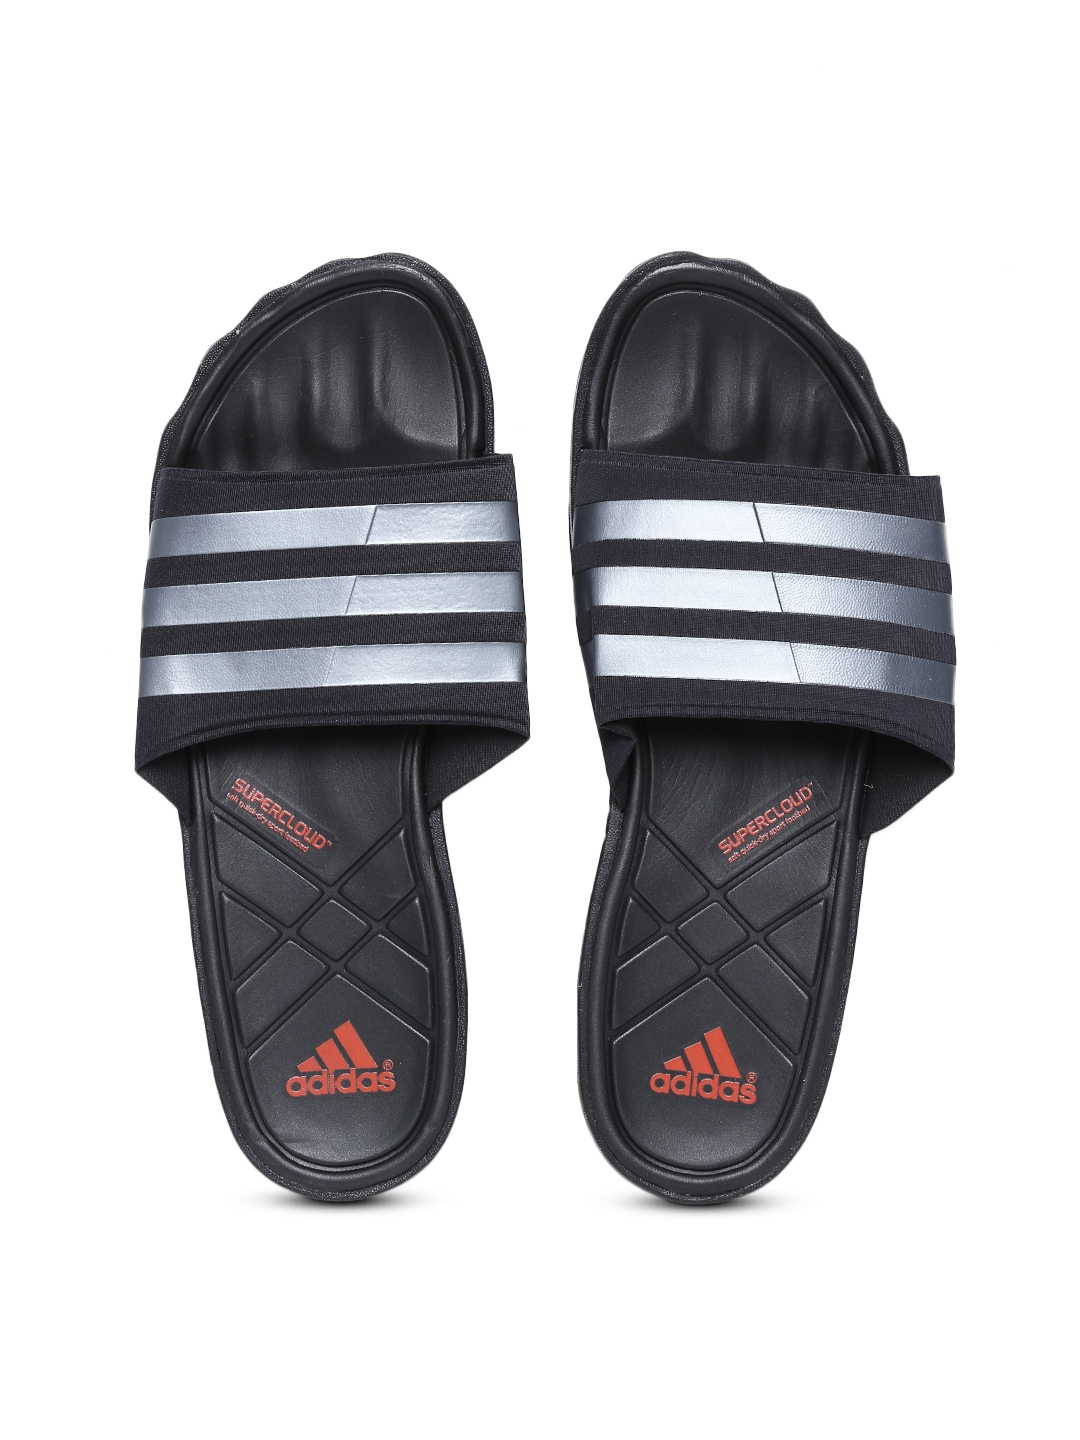 2eaee64e7c7381 Adidas b26322 Men Black And Grey Adipure Slide Striped Flip Flops- Price in  India